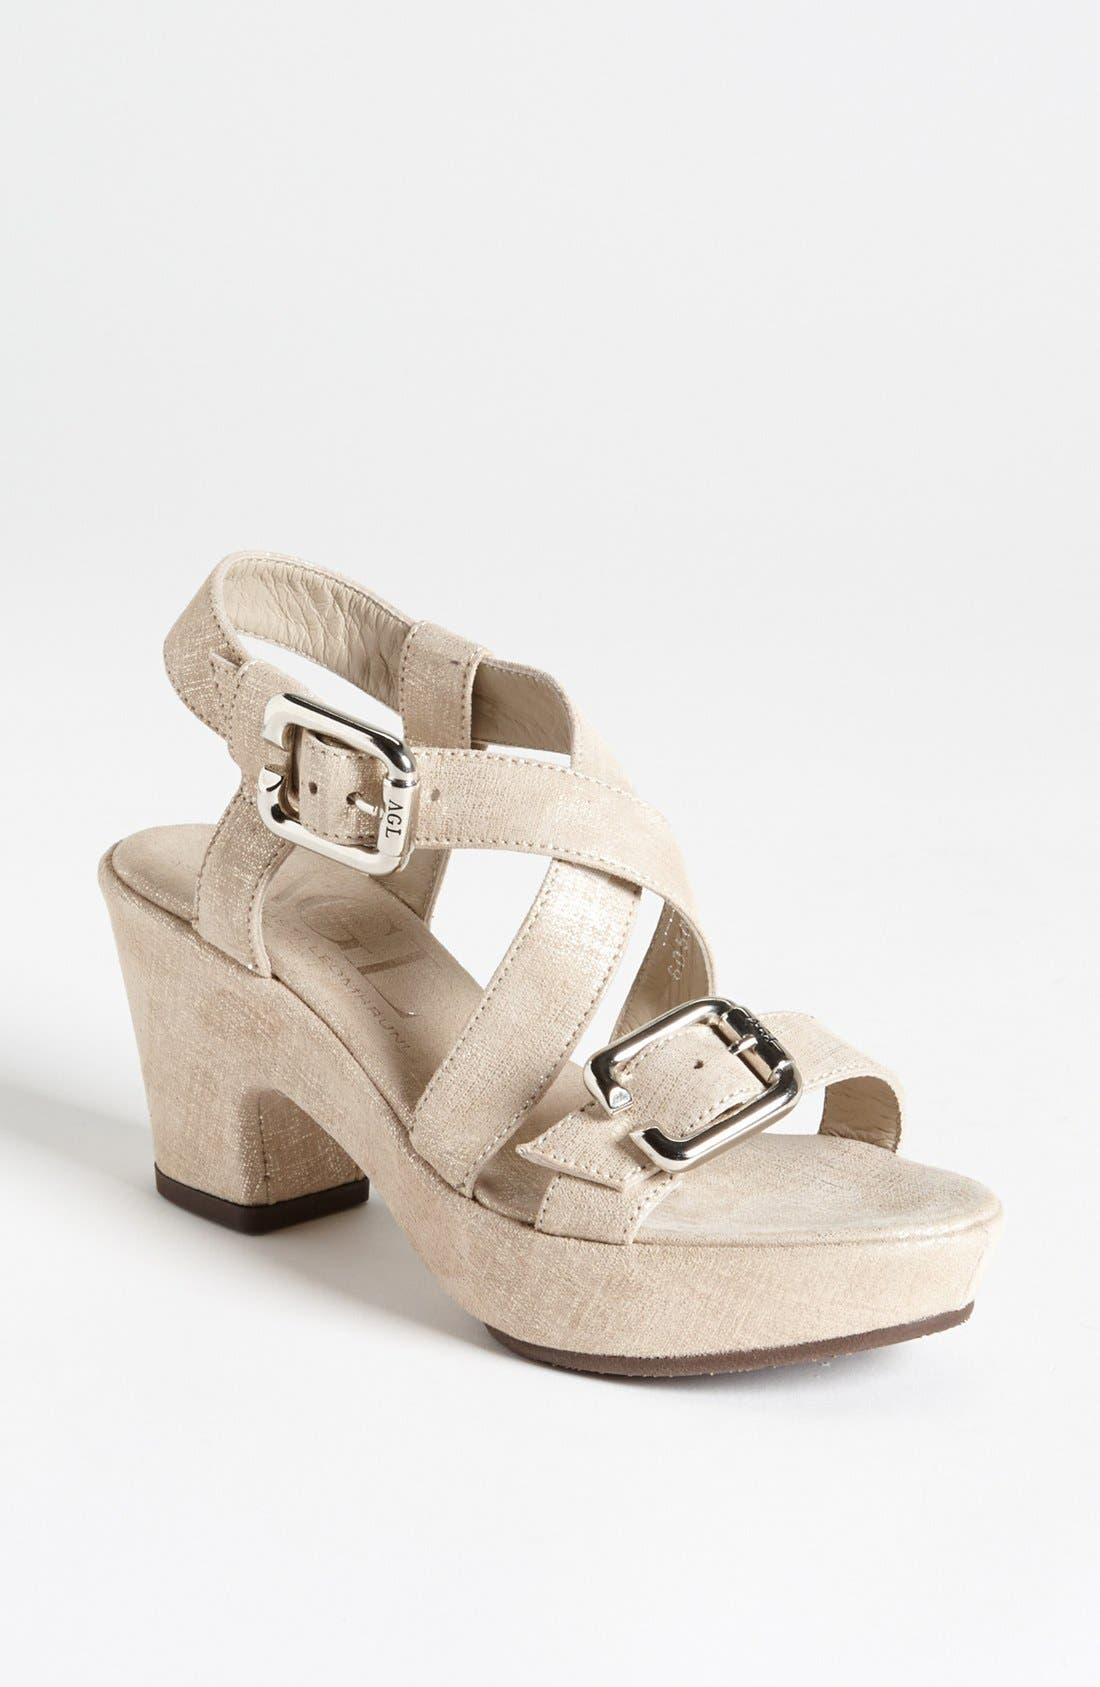 Alternate Image 1 Selected - Attilio Giusti Leombruni Buckle Sandal